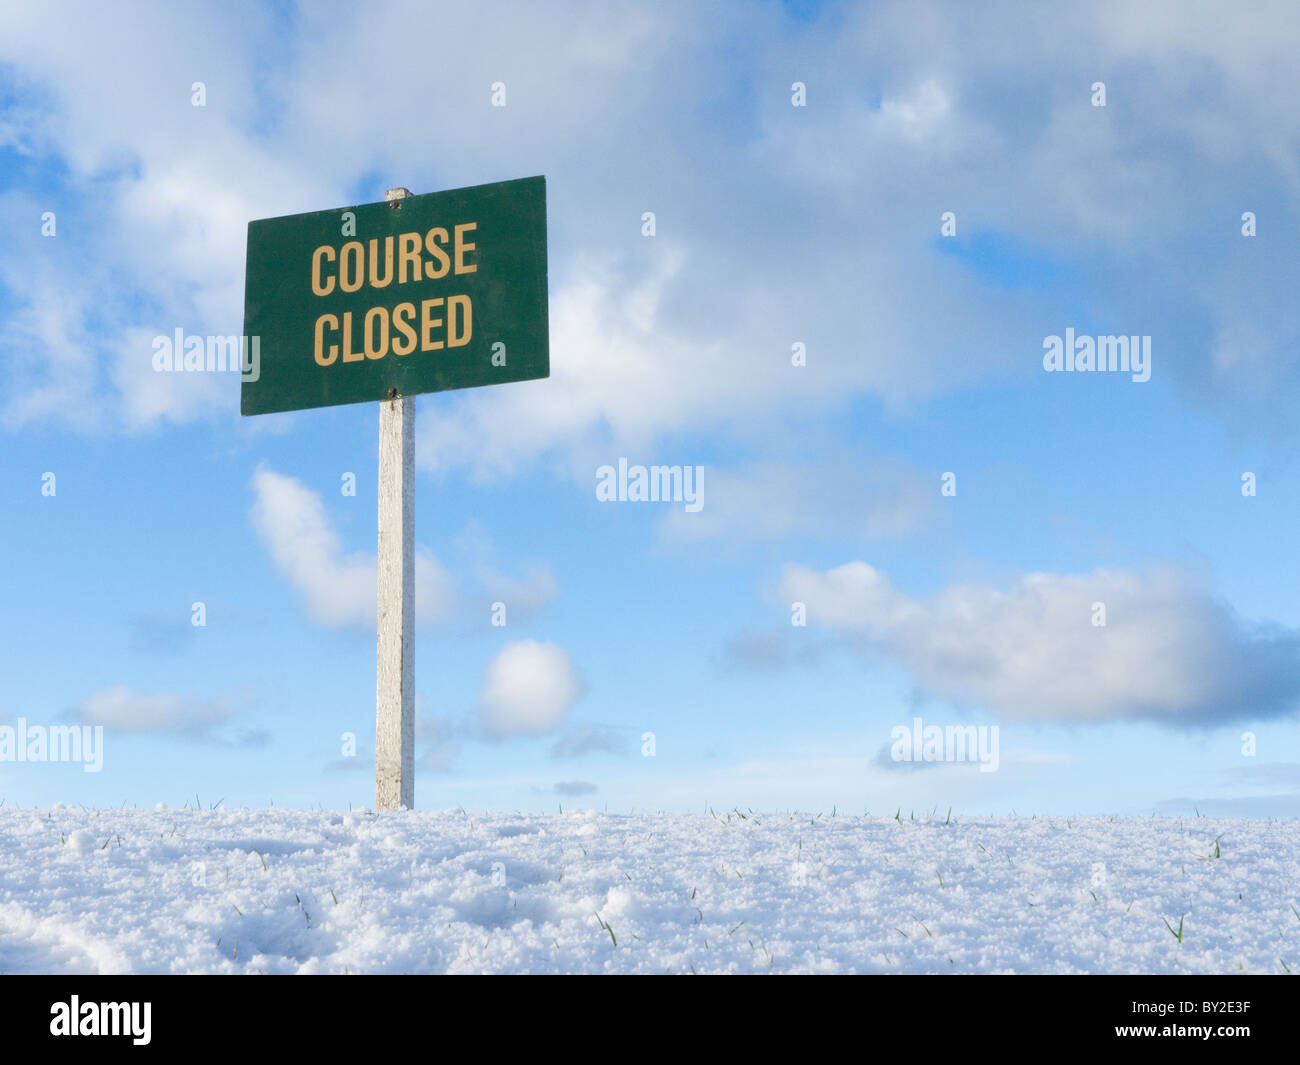 Sign indicating that the golf course is closed due to heavy snow fall, in North Berwick, Scotland. - Stock Image